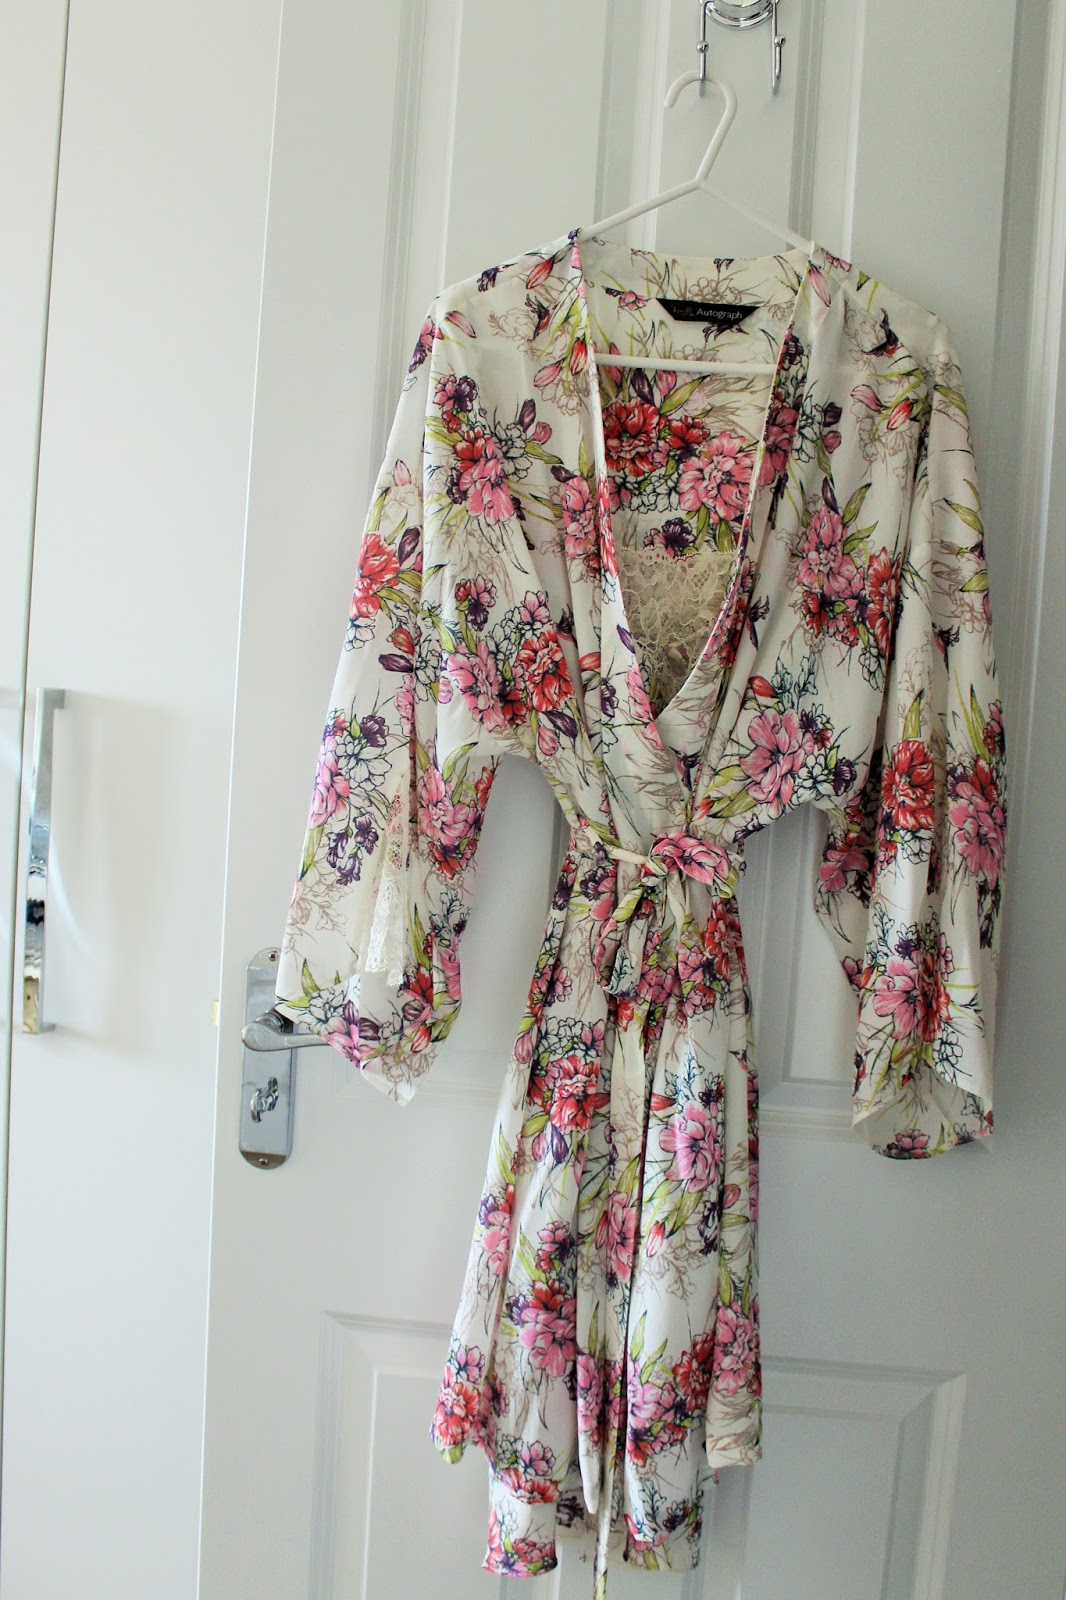 Nightie and Dressing Gown, Rosie for Autograph, Marks and Spencer